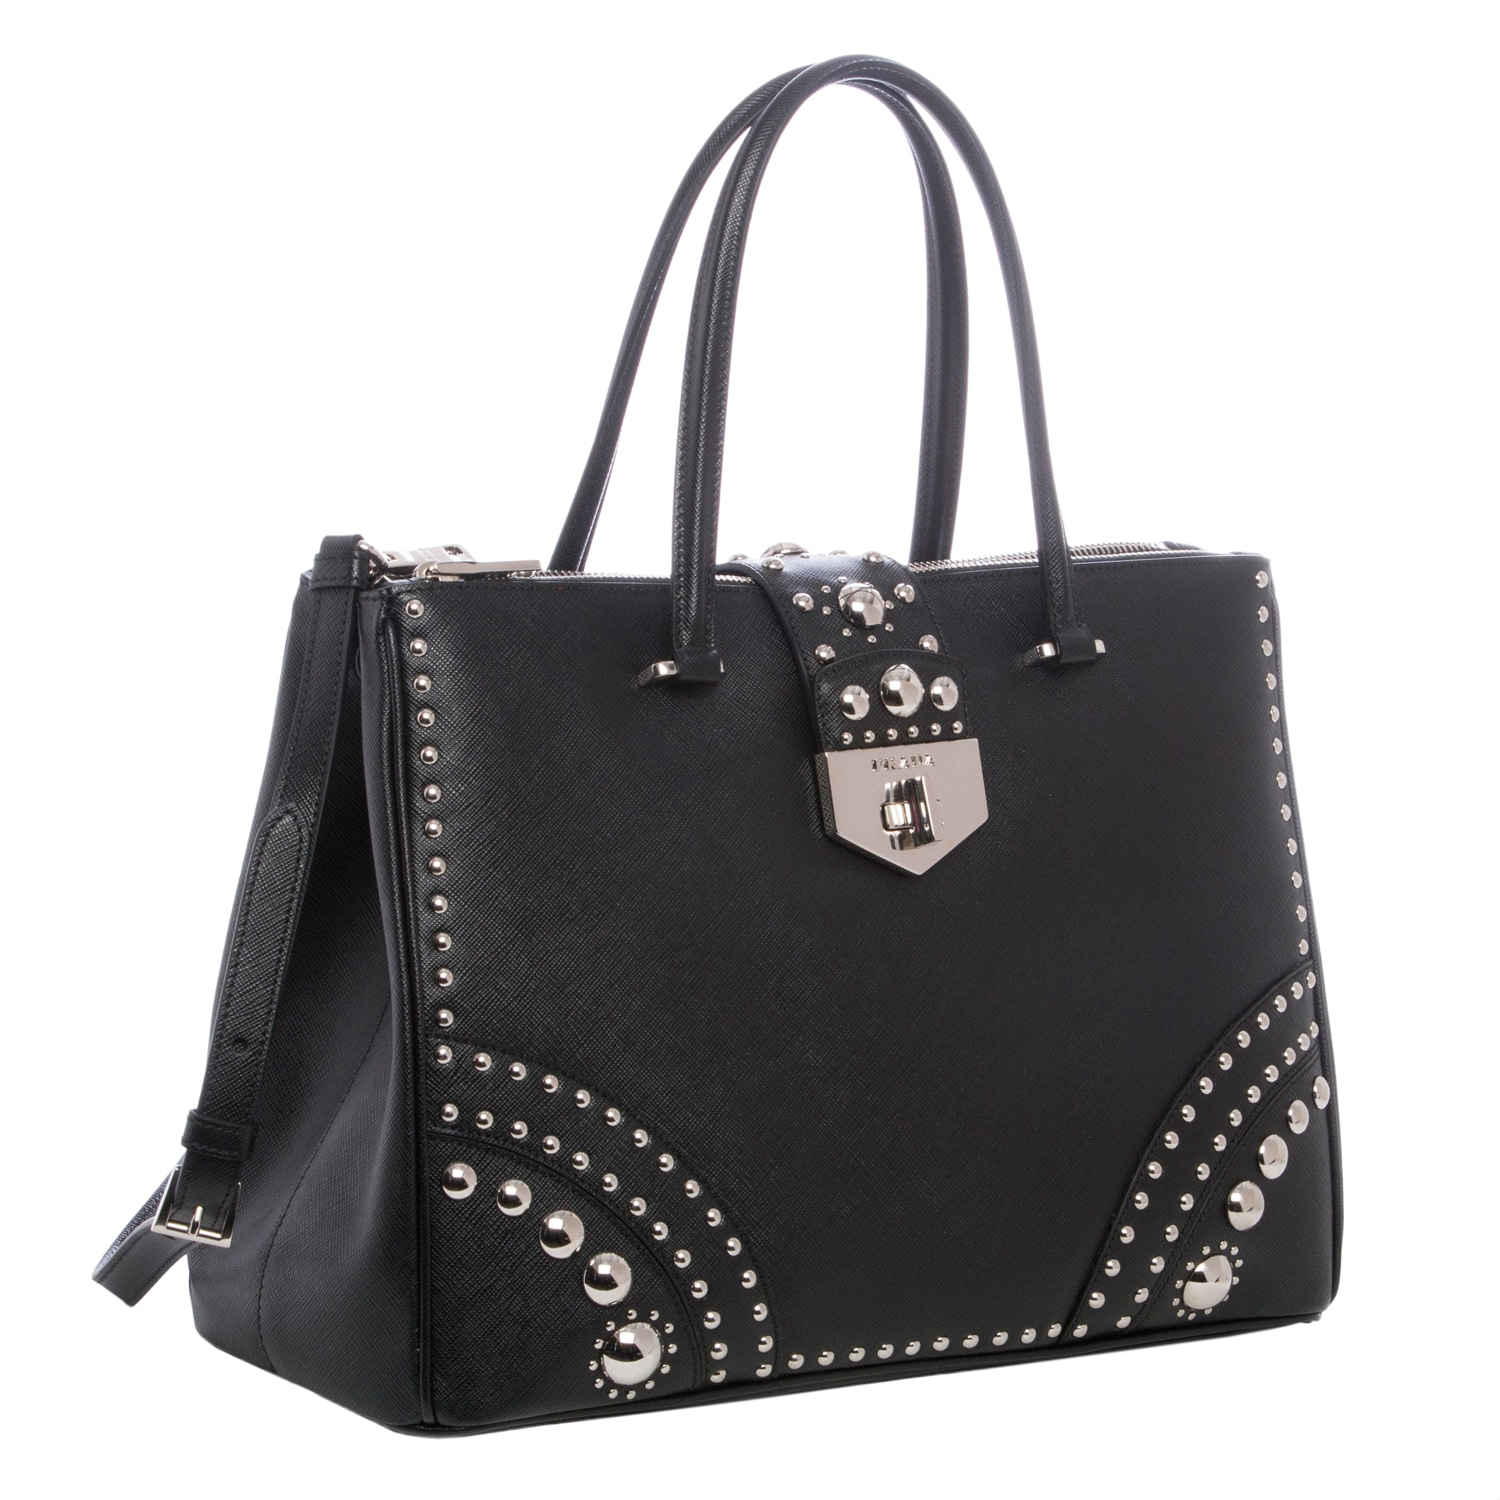 d2499d0c56d6 ... canada shop prada black saffiano leather studded tote free shipping  today overstock 8962735 291e1 b5791